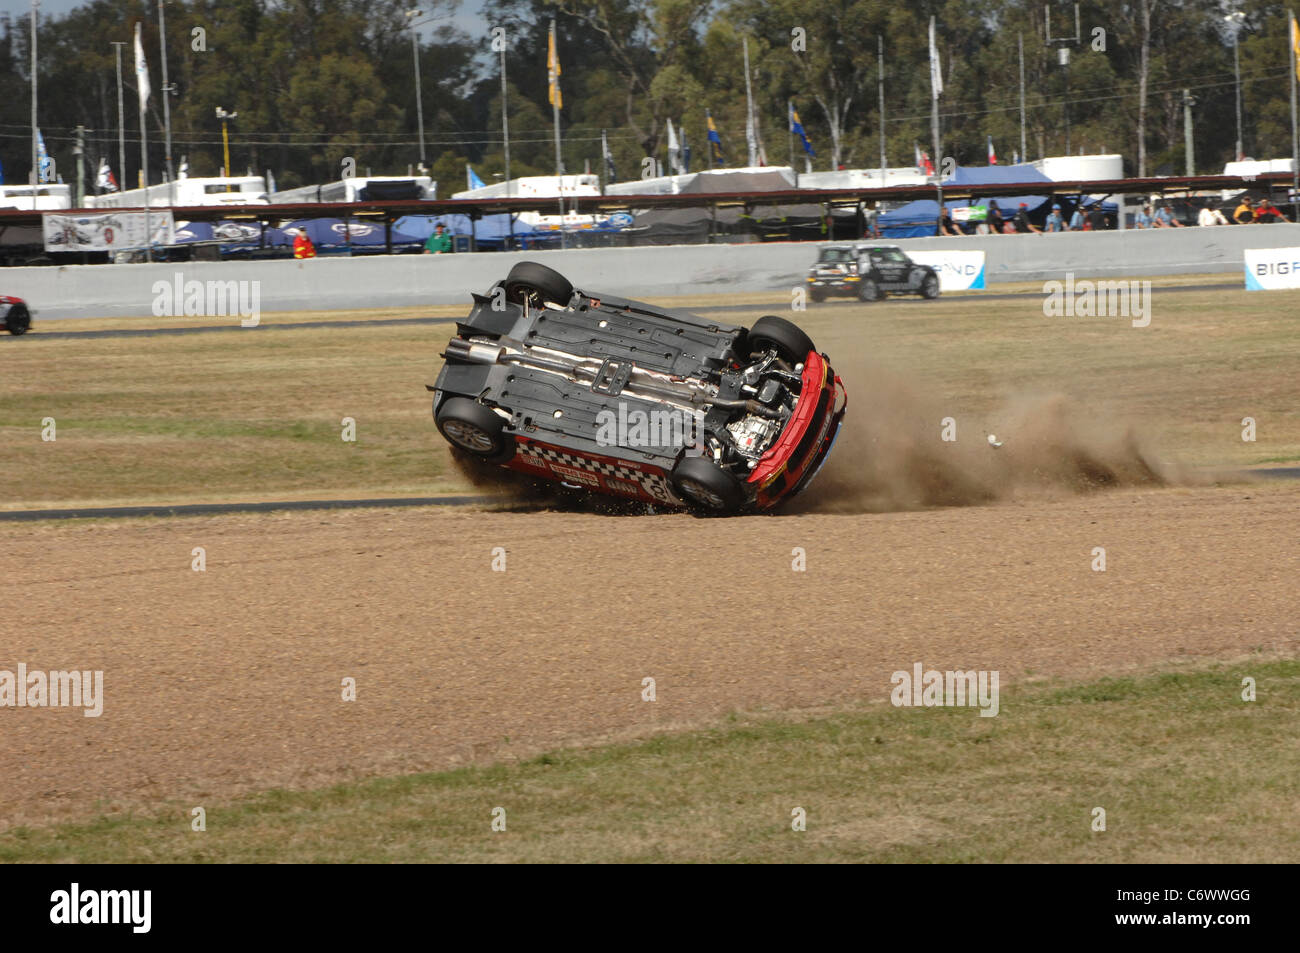 Spectators at the Ipswich 300 V8 Supercar race at Willowbank,.Queensland, Australia, were stunned to witness driver - Stock Image